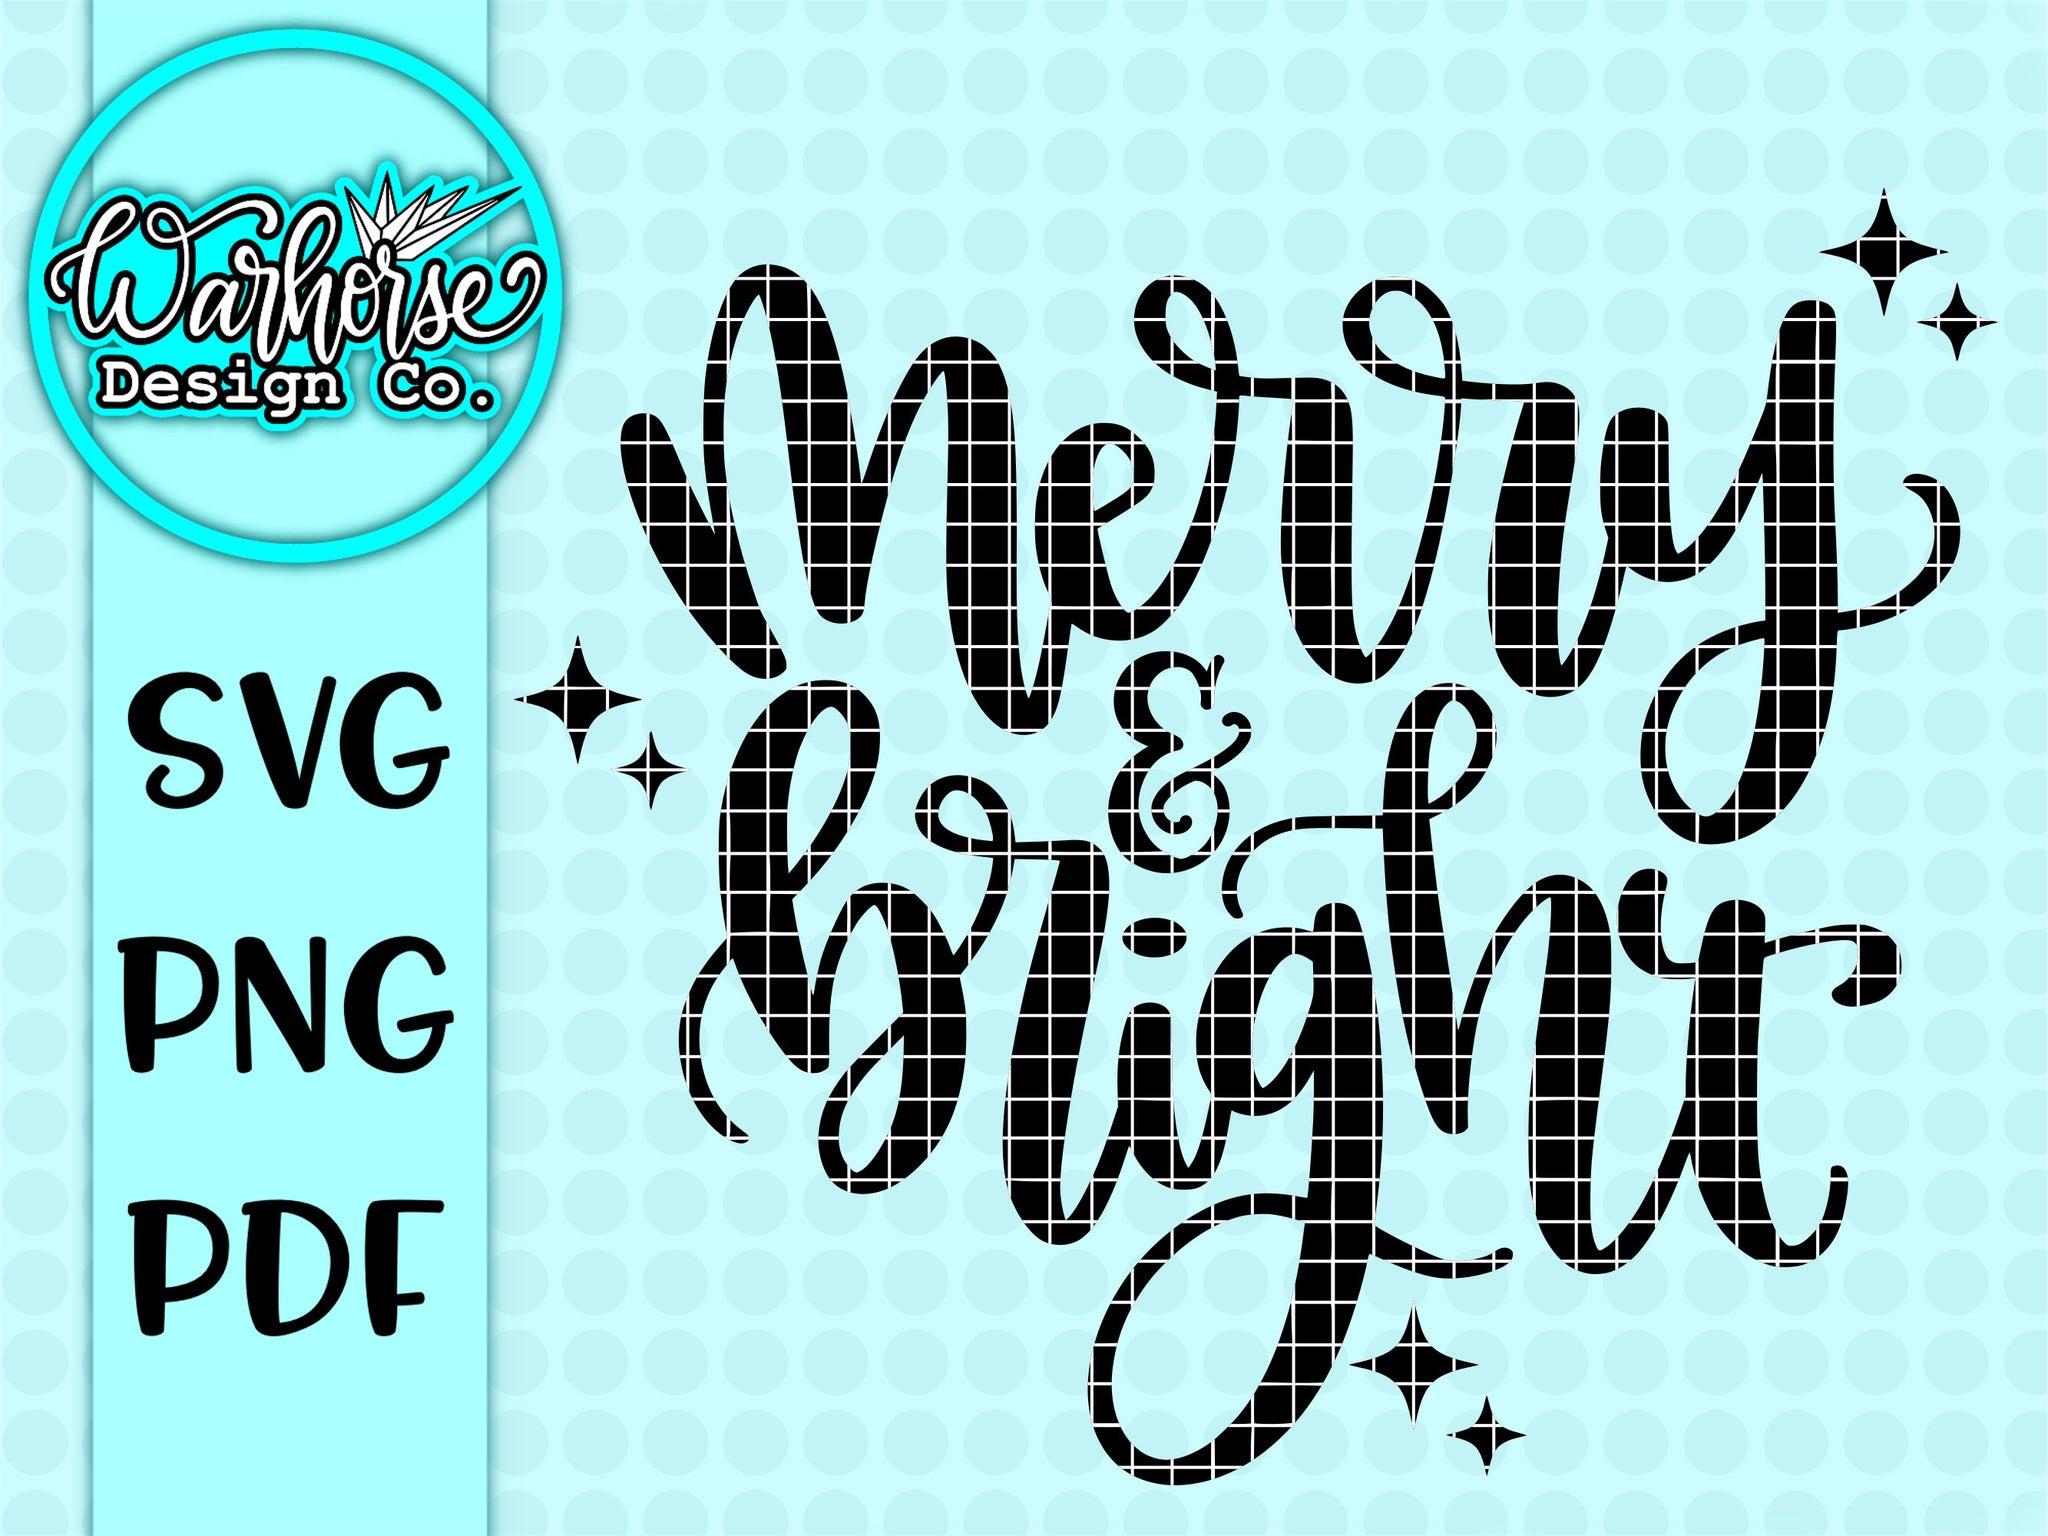 Merry and Bright SVG PNG PDF